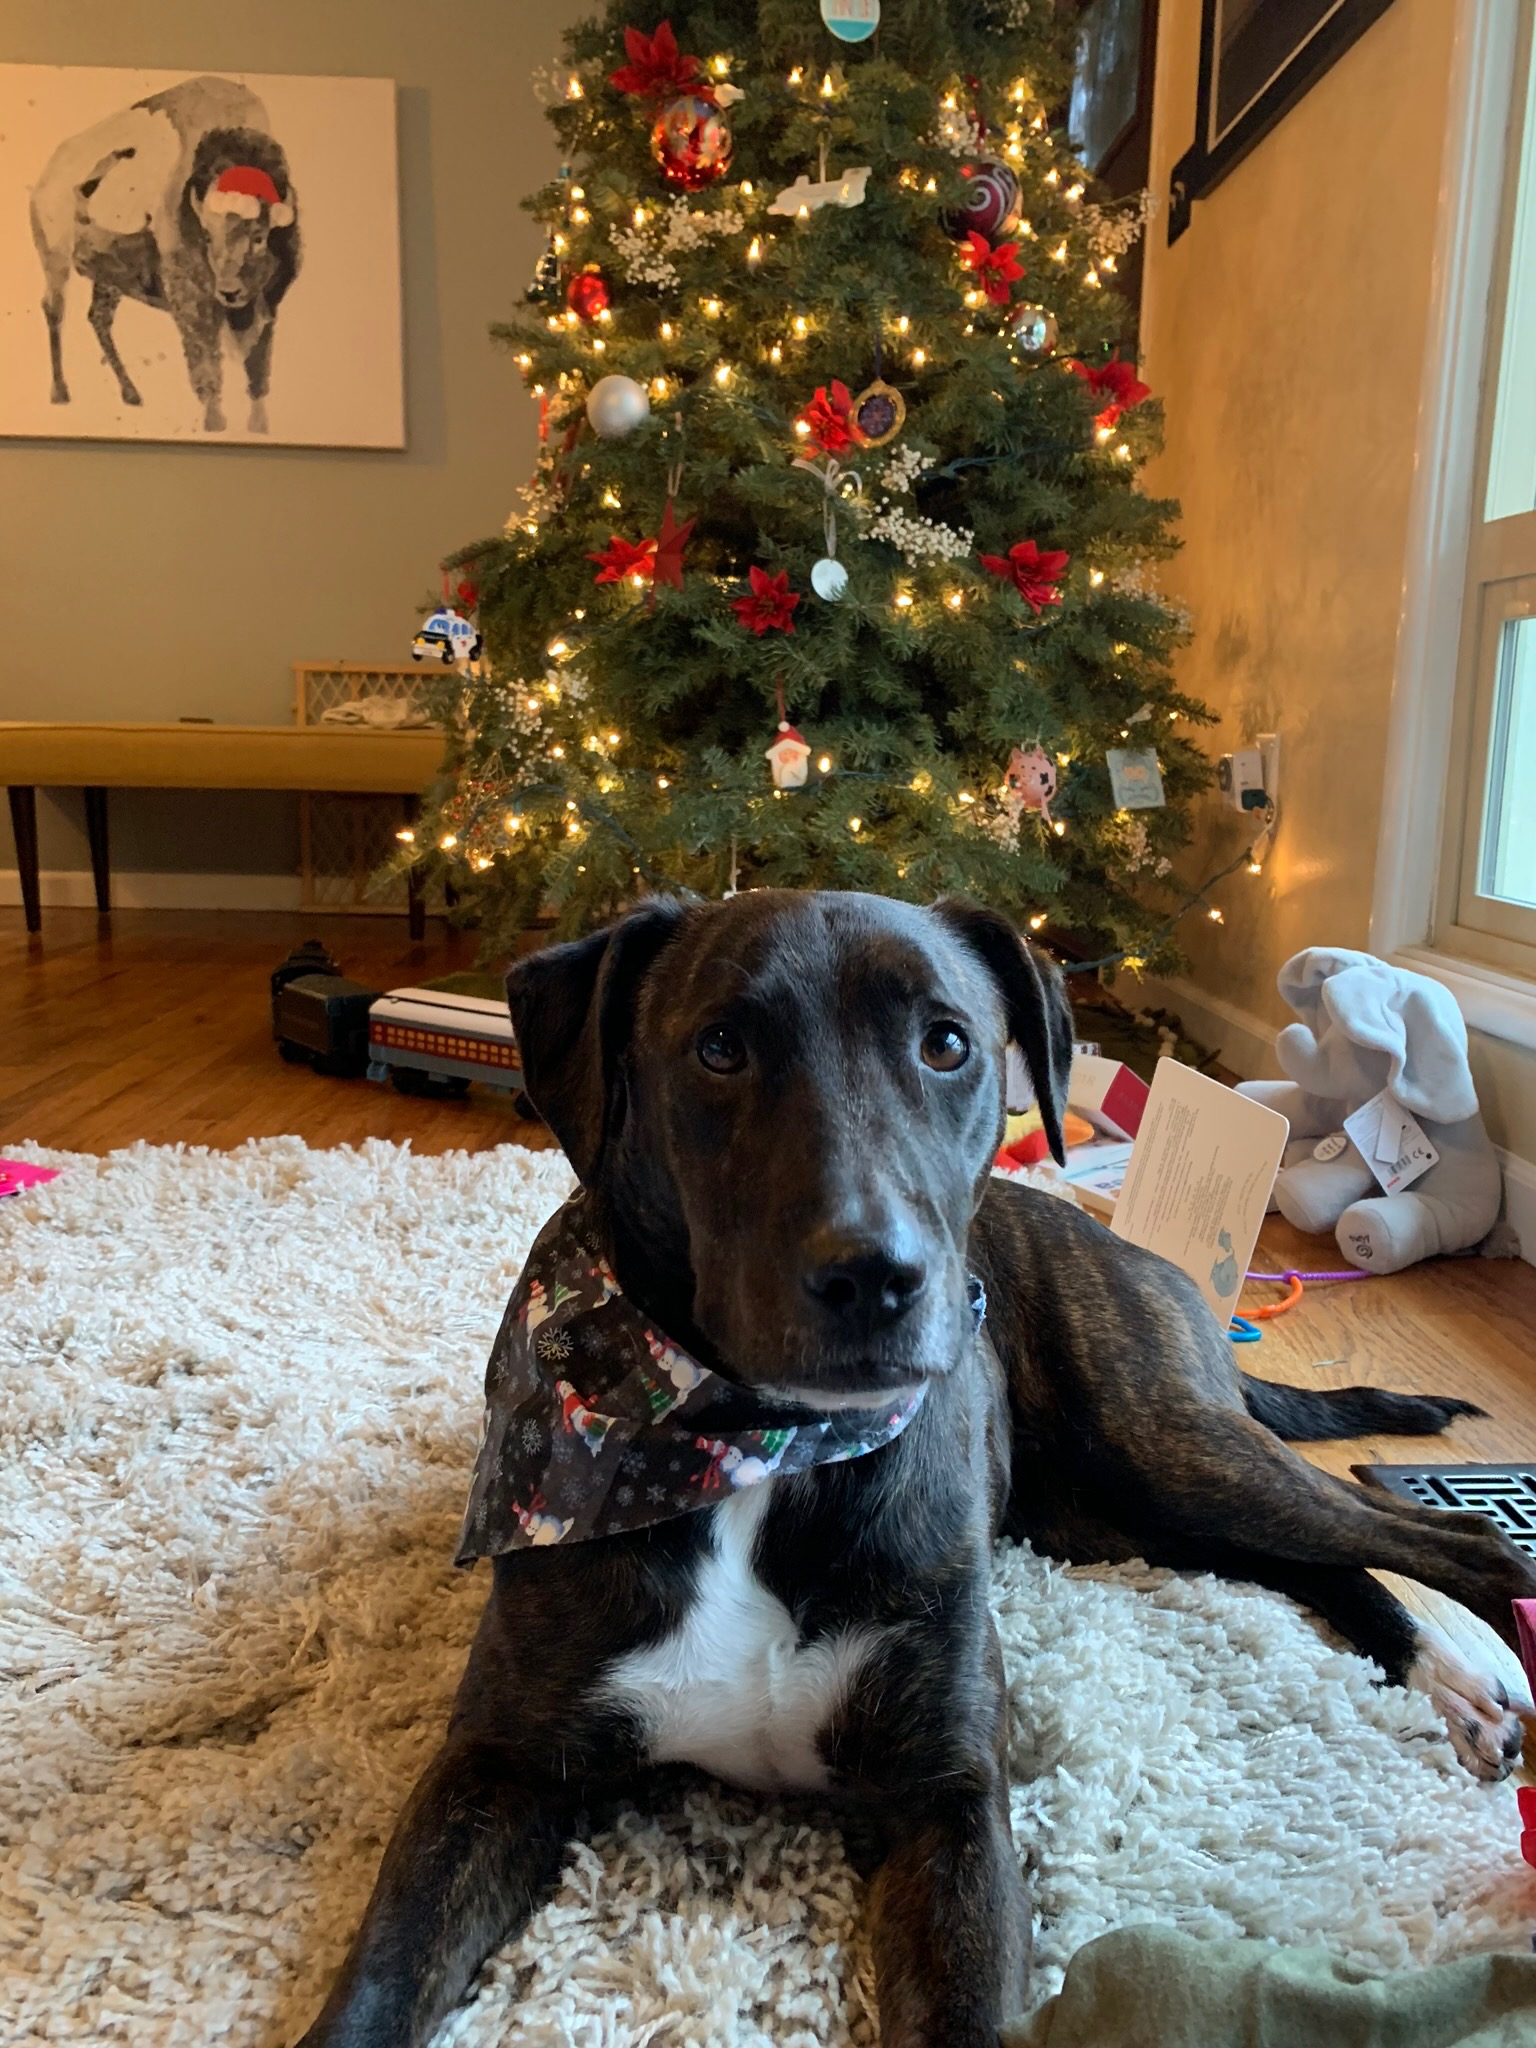 Asha, the Christmas Pup